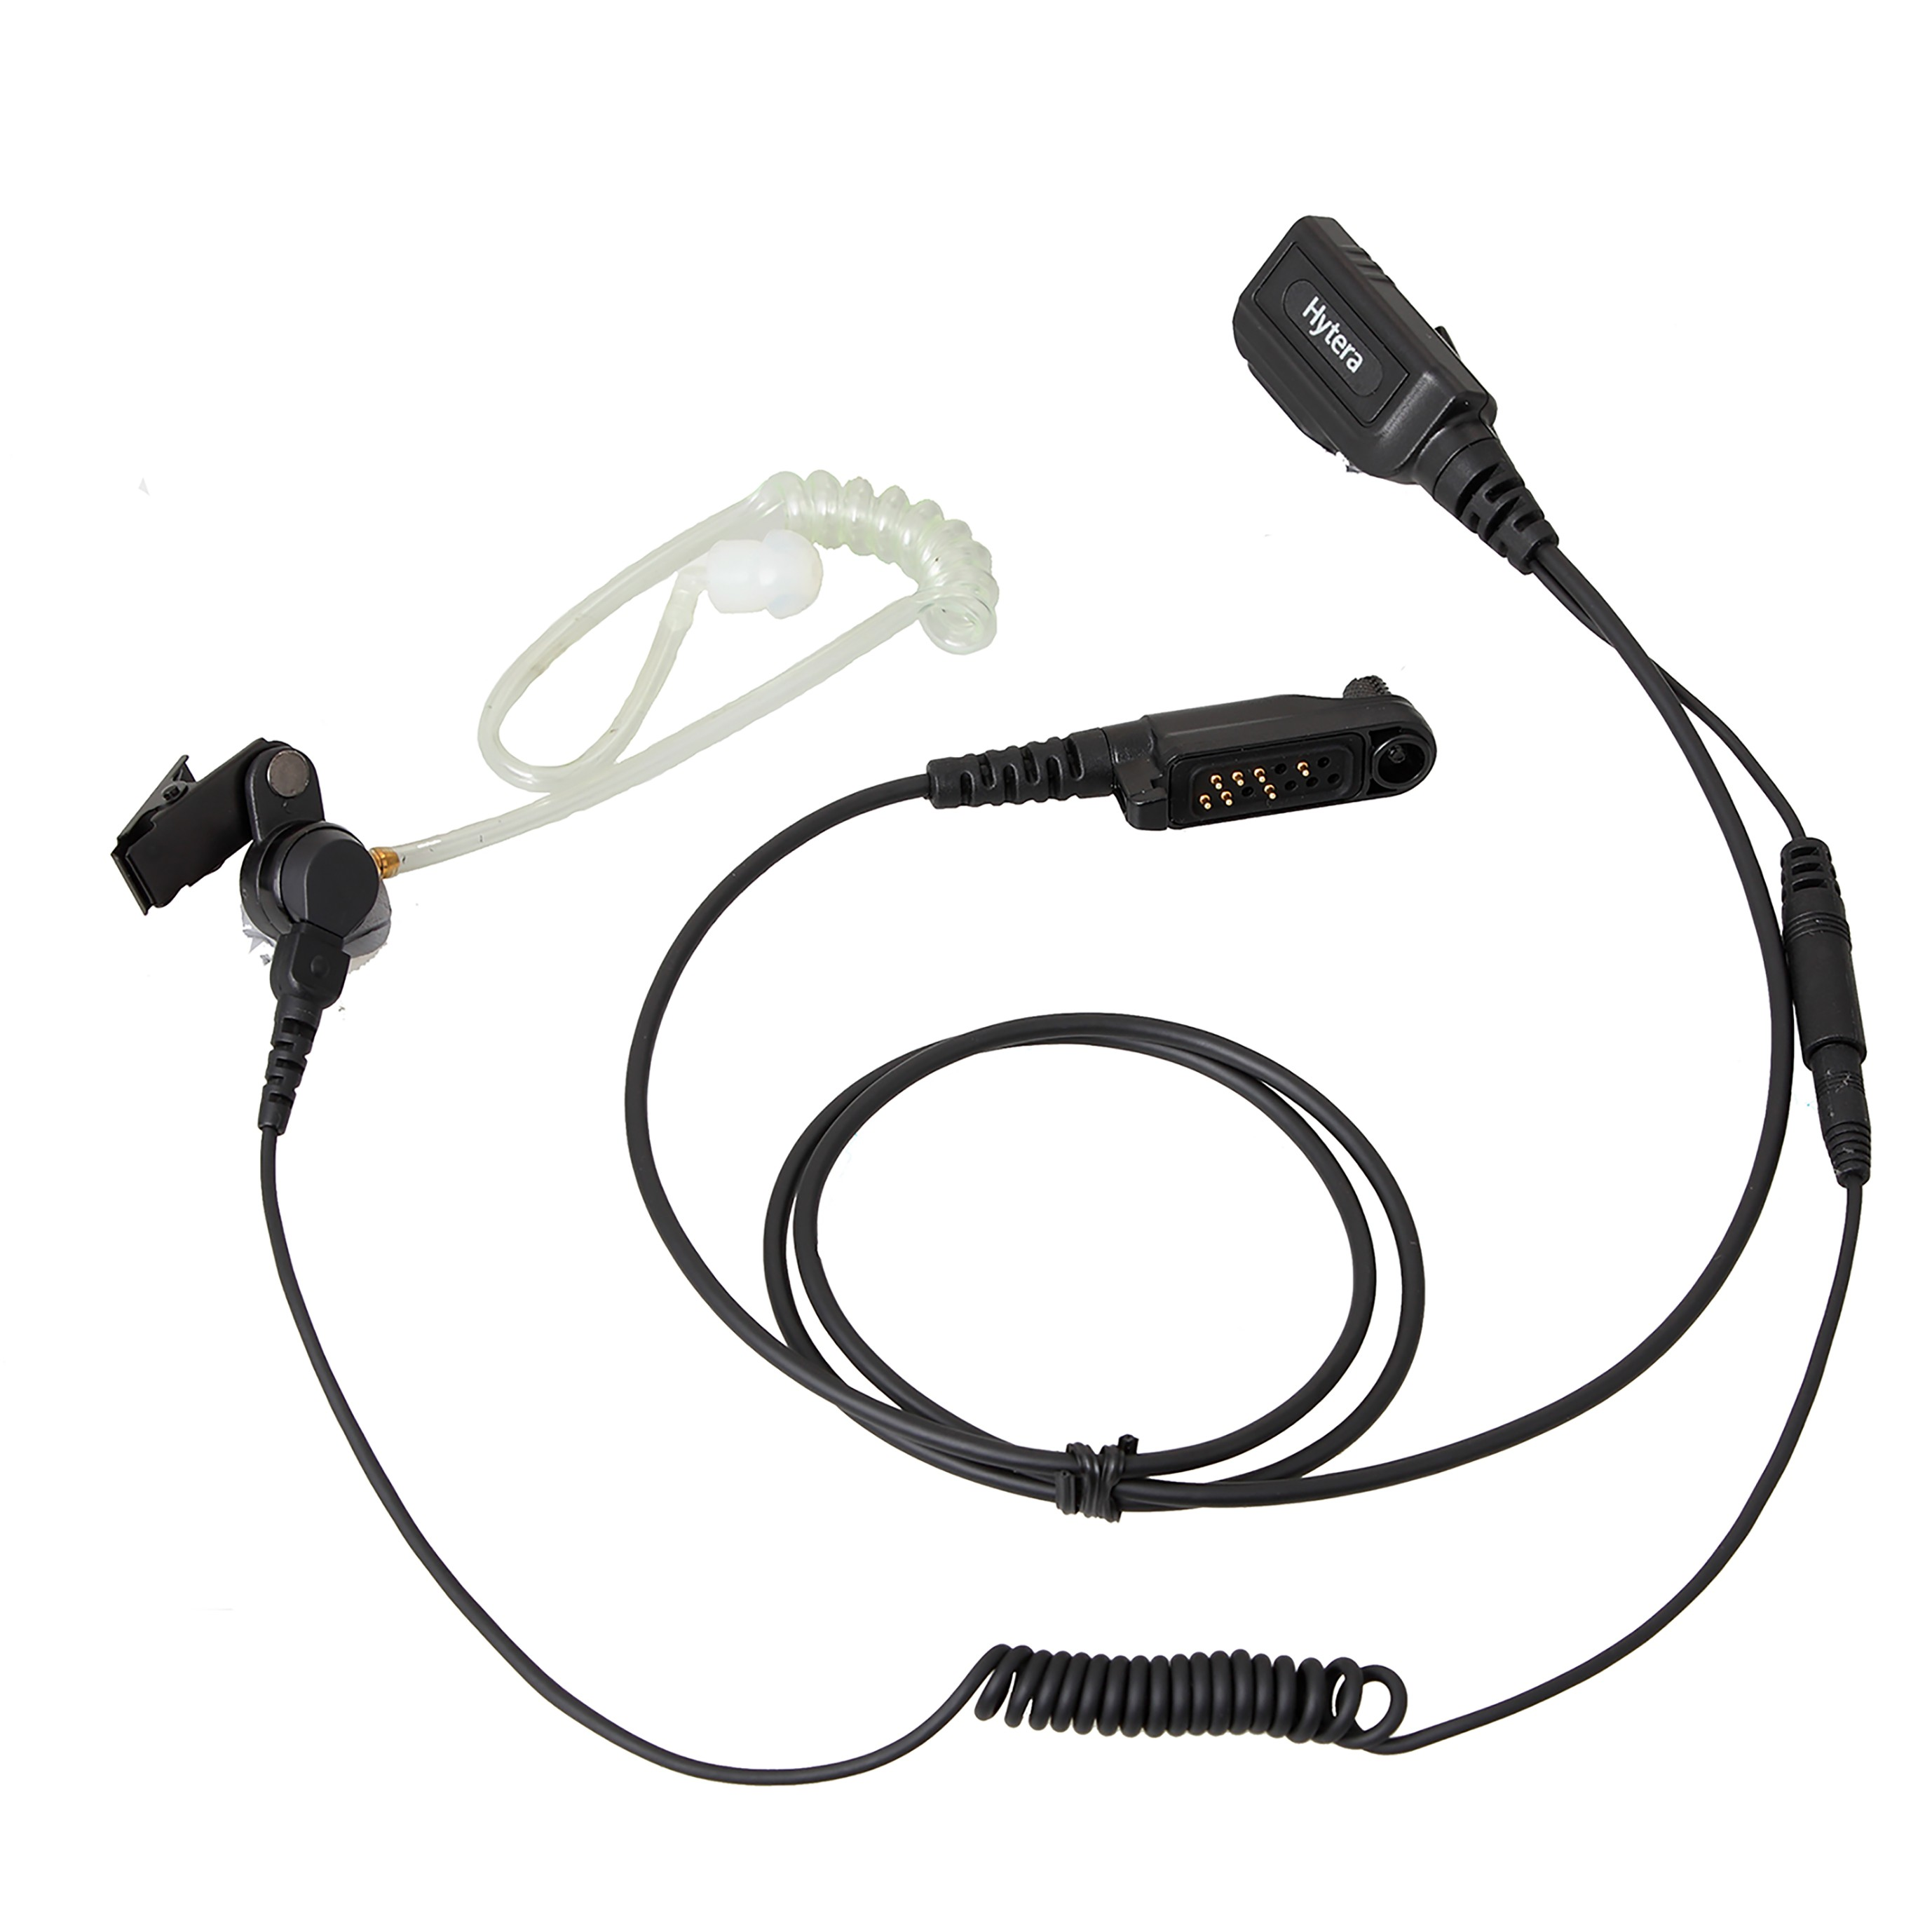 Hytera - Detachable Earpiece with Transparent Acoustic Tube